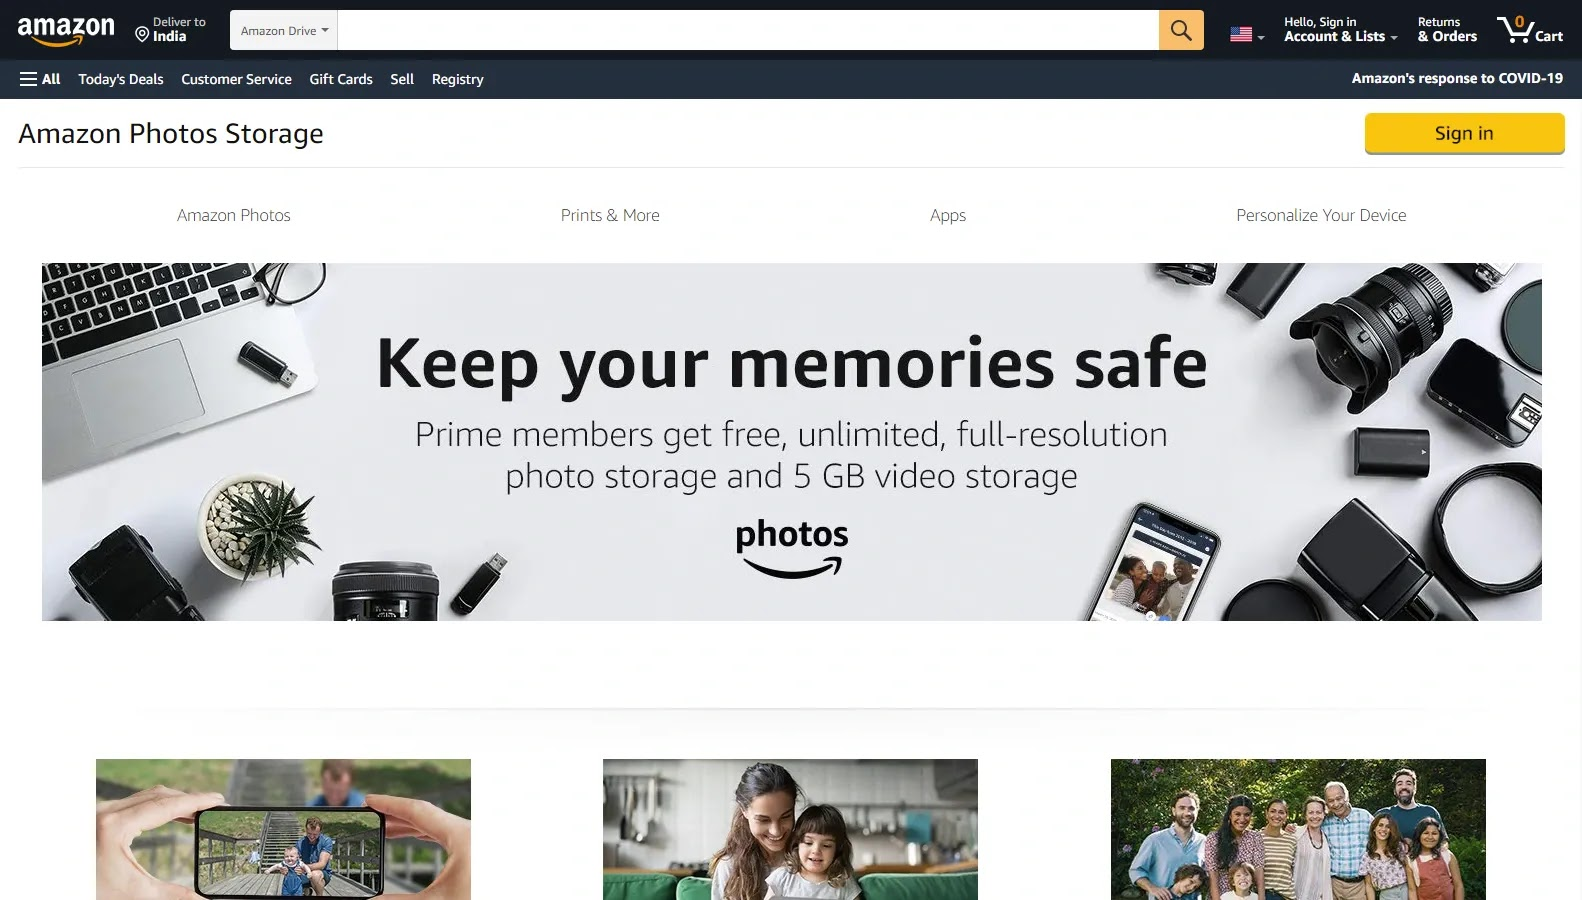 Amazon Drive - Some of the Best Free Cloud Storage Options in 2021